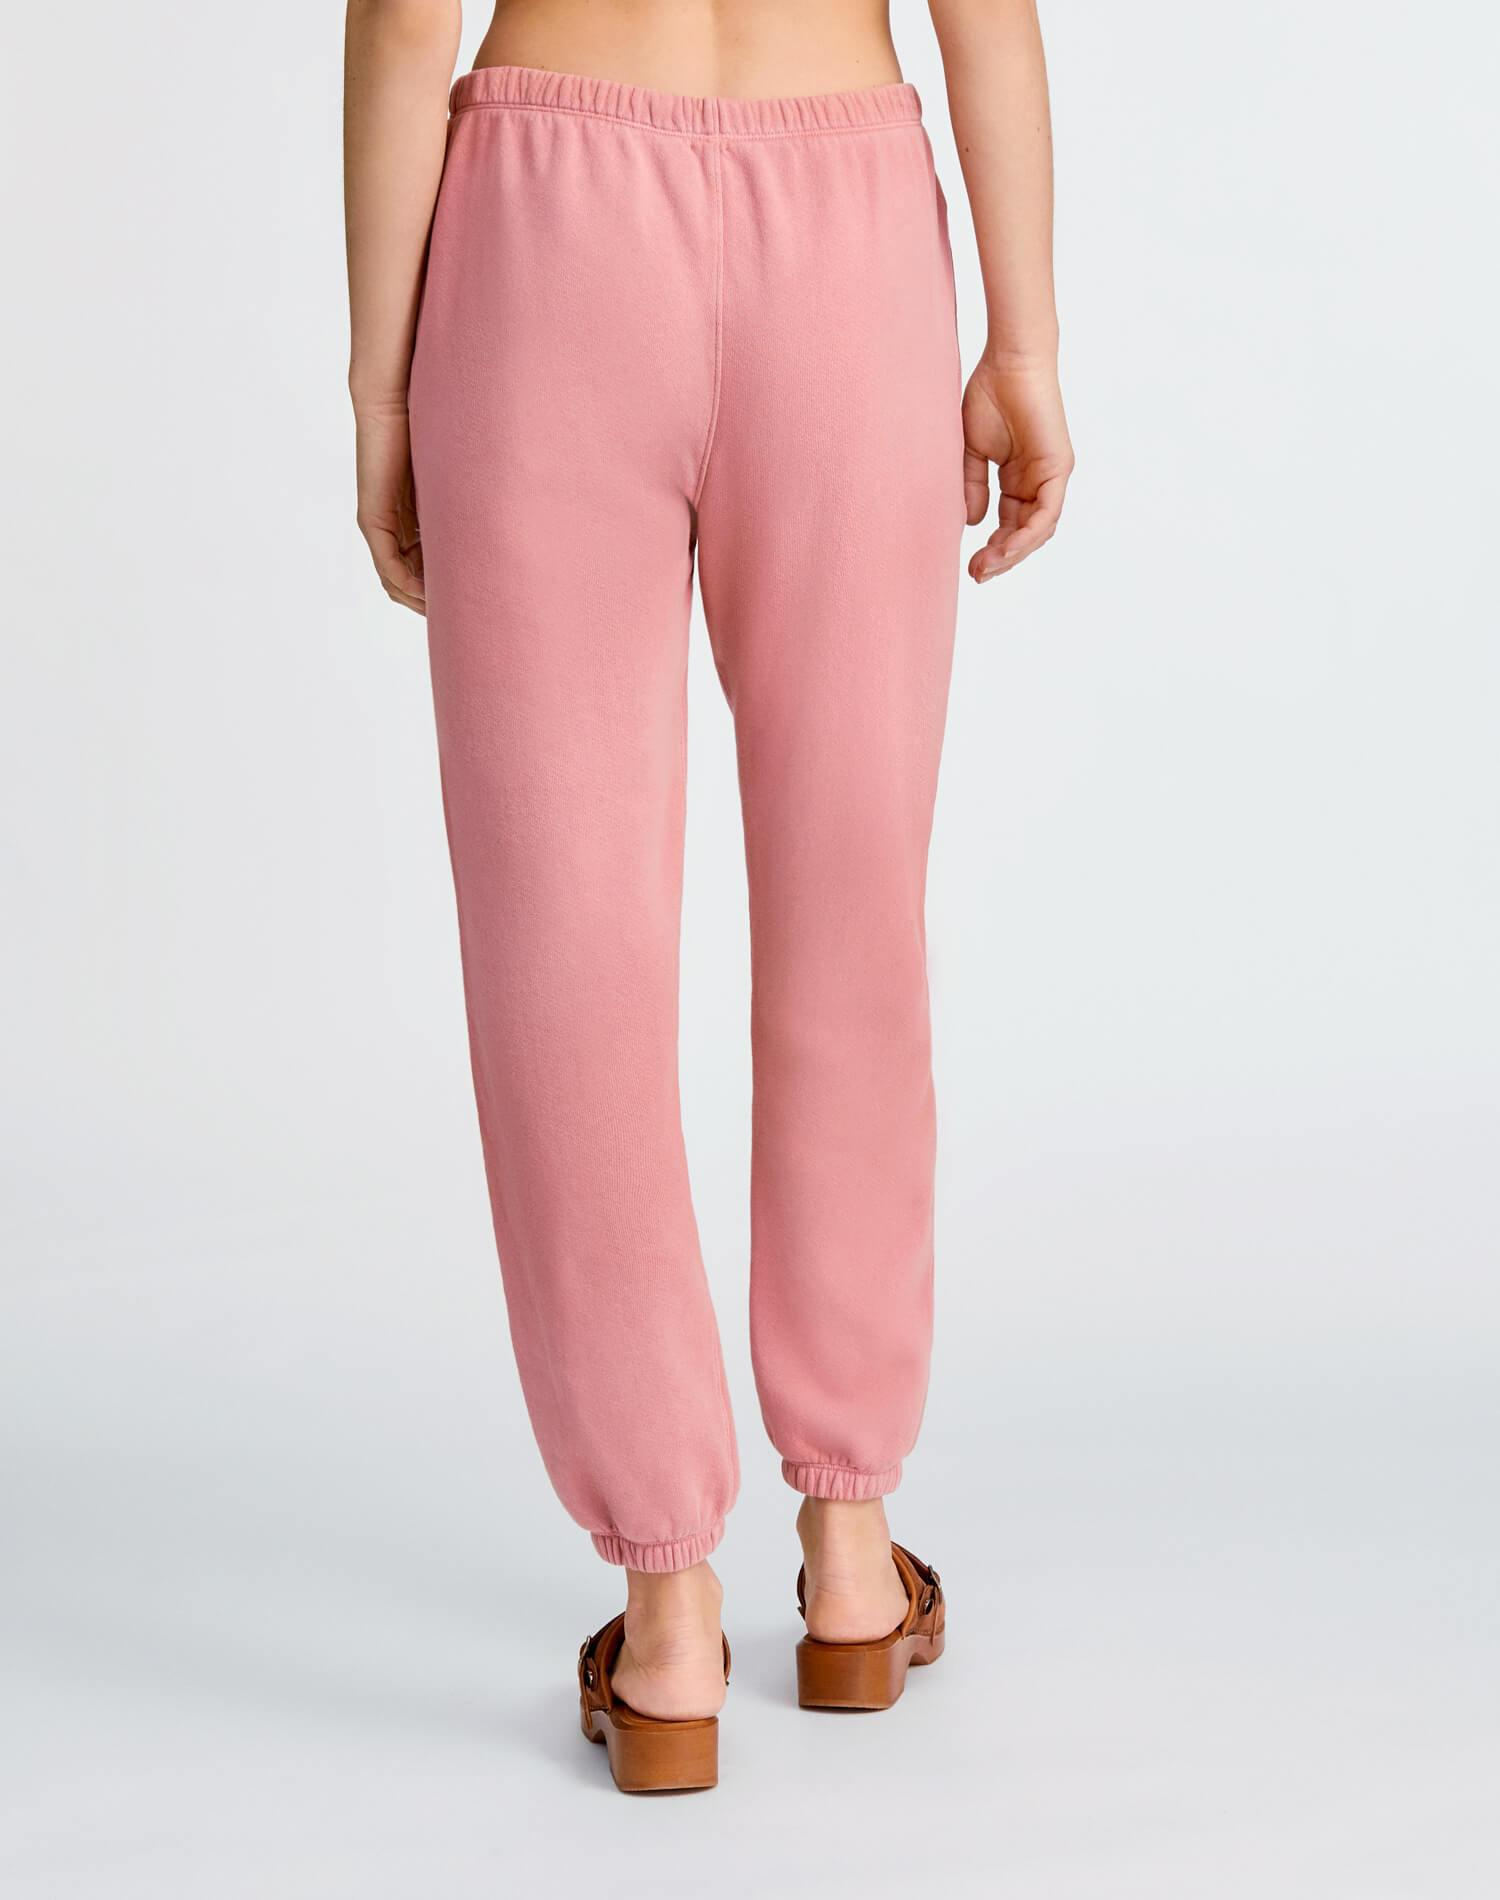 80s Sweatpant - Faded Clay 3